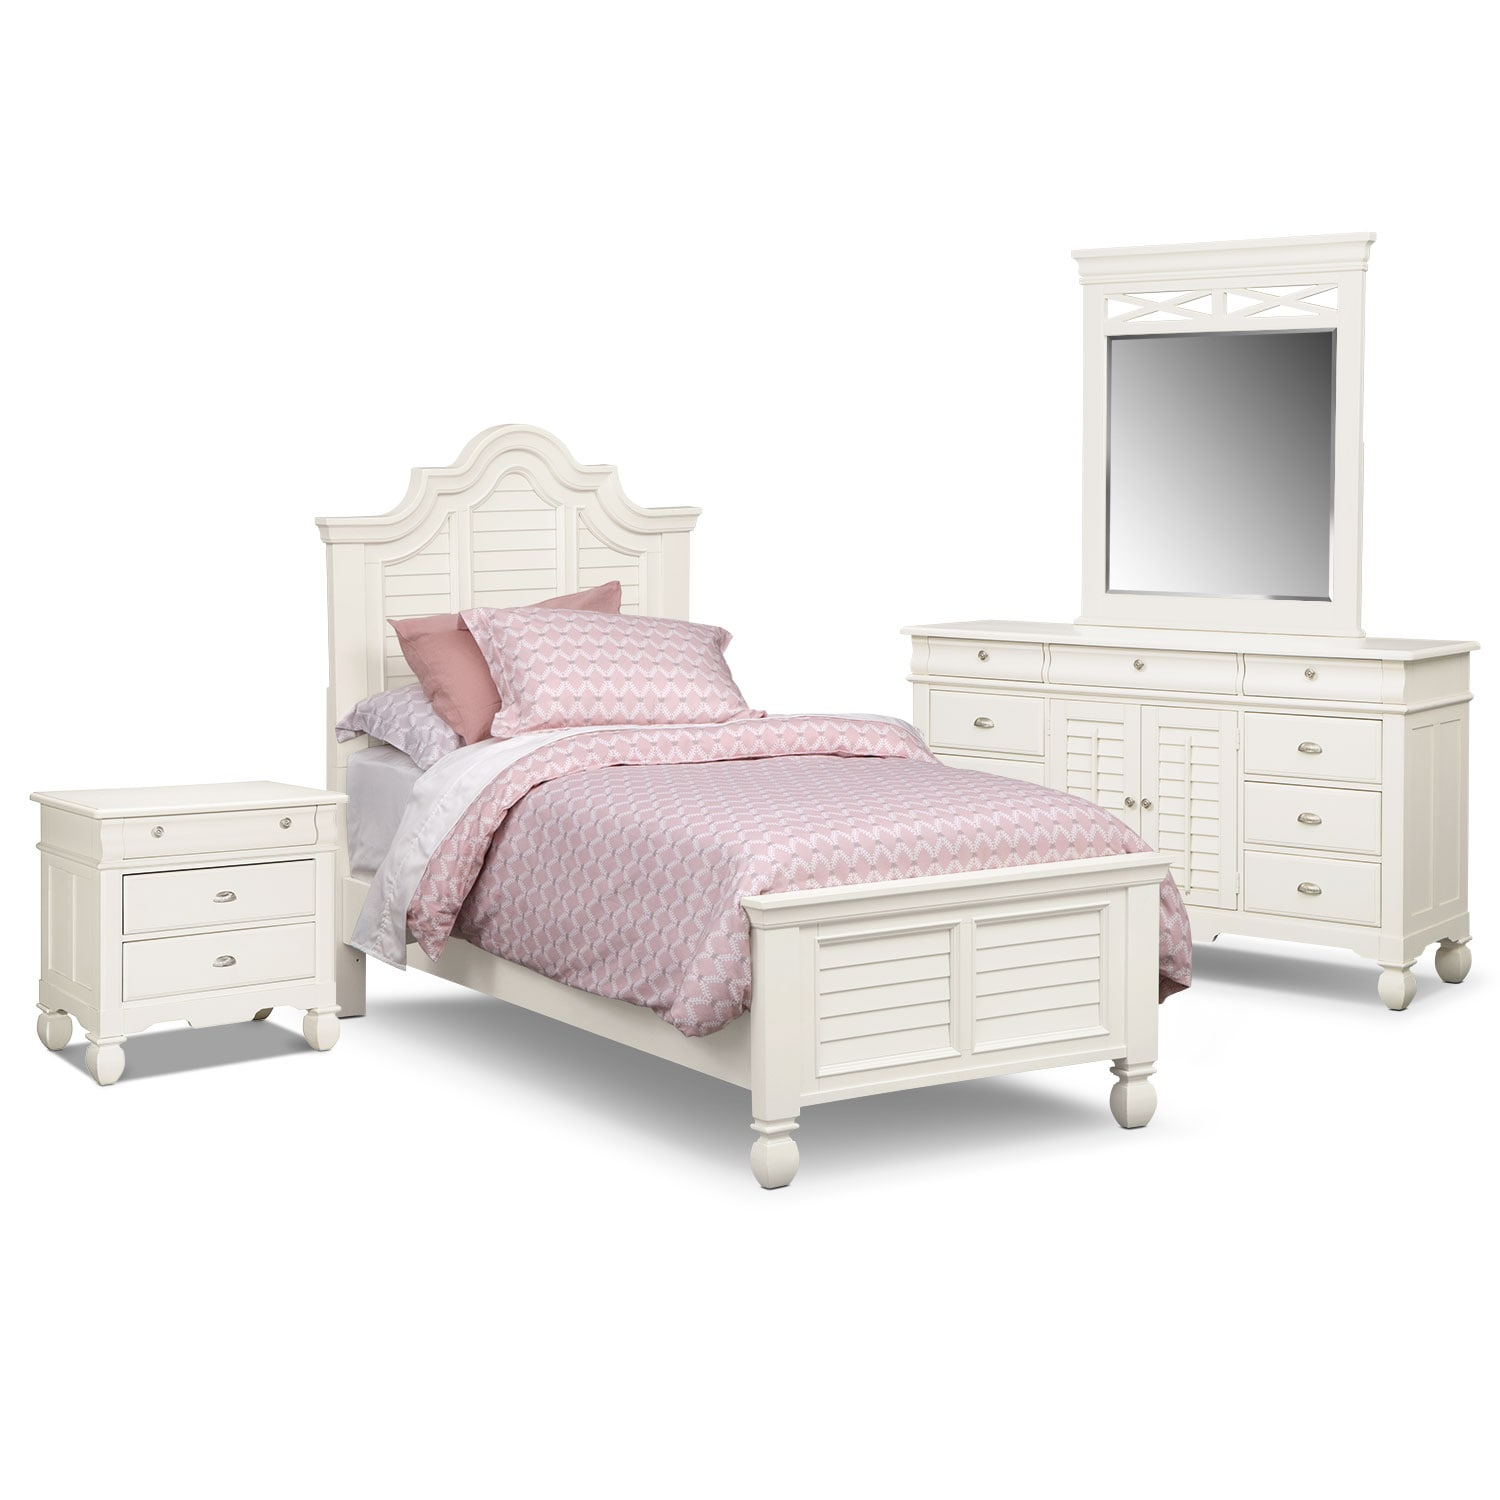 Kids Furniture - Plantation Cove 6-Piece Full Bedroom Set - White